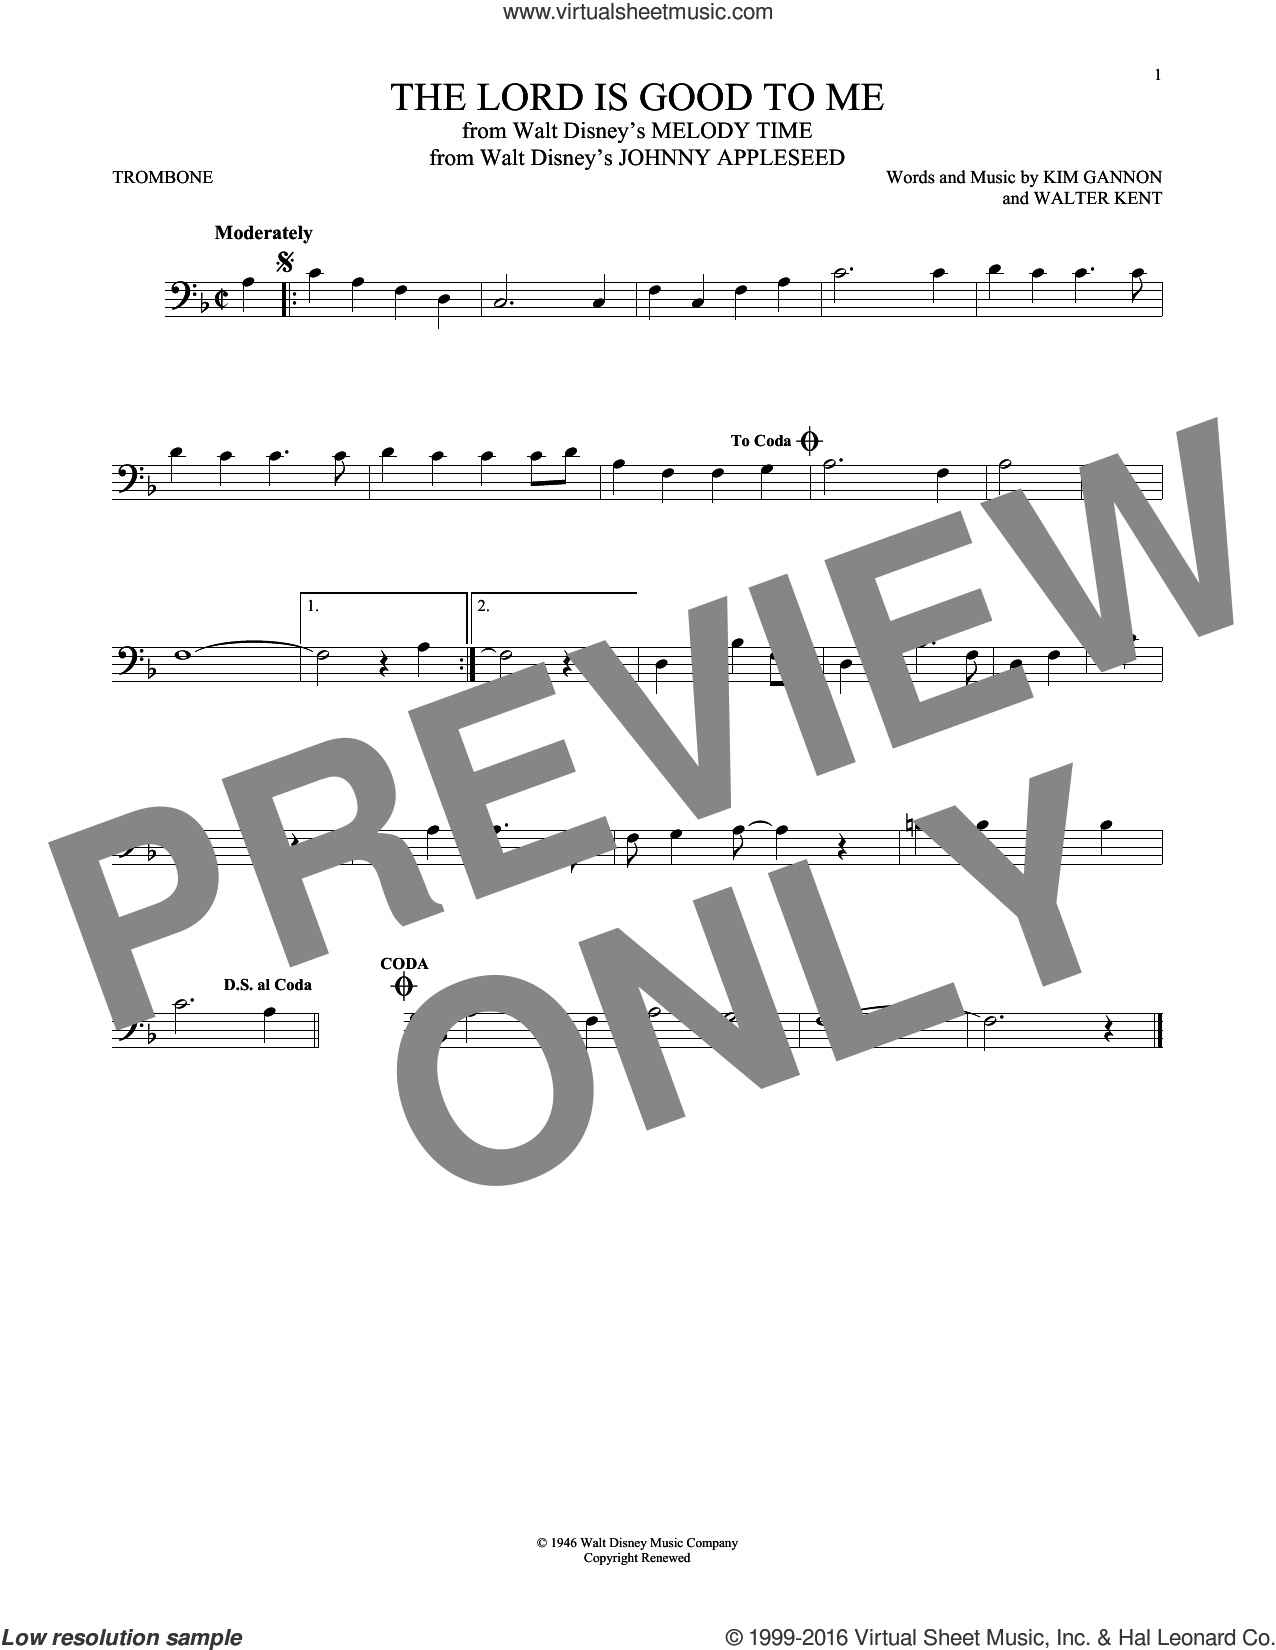 The Lord Is Good To Me sheet music for trombone solo by Kim Gannon and Walter Kent, intermediate skill level